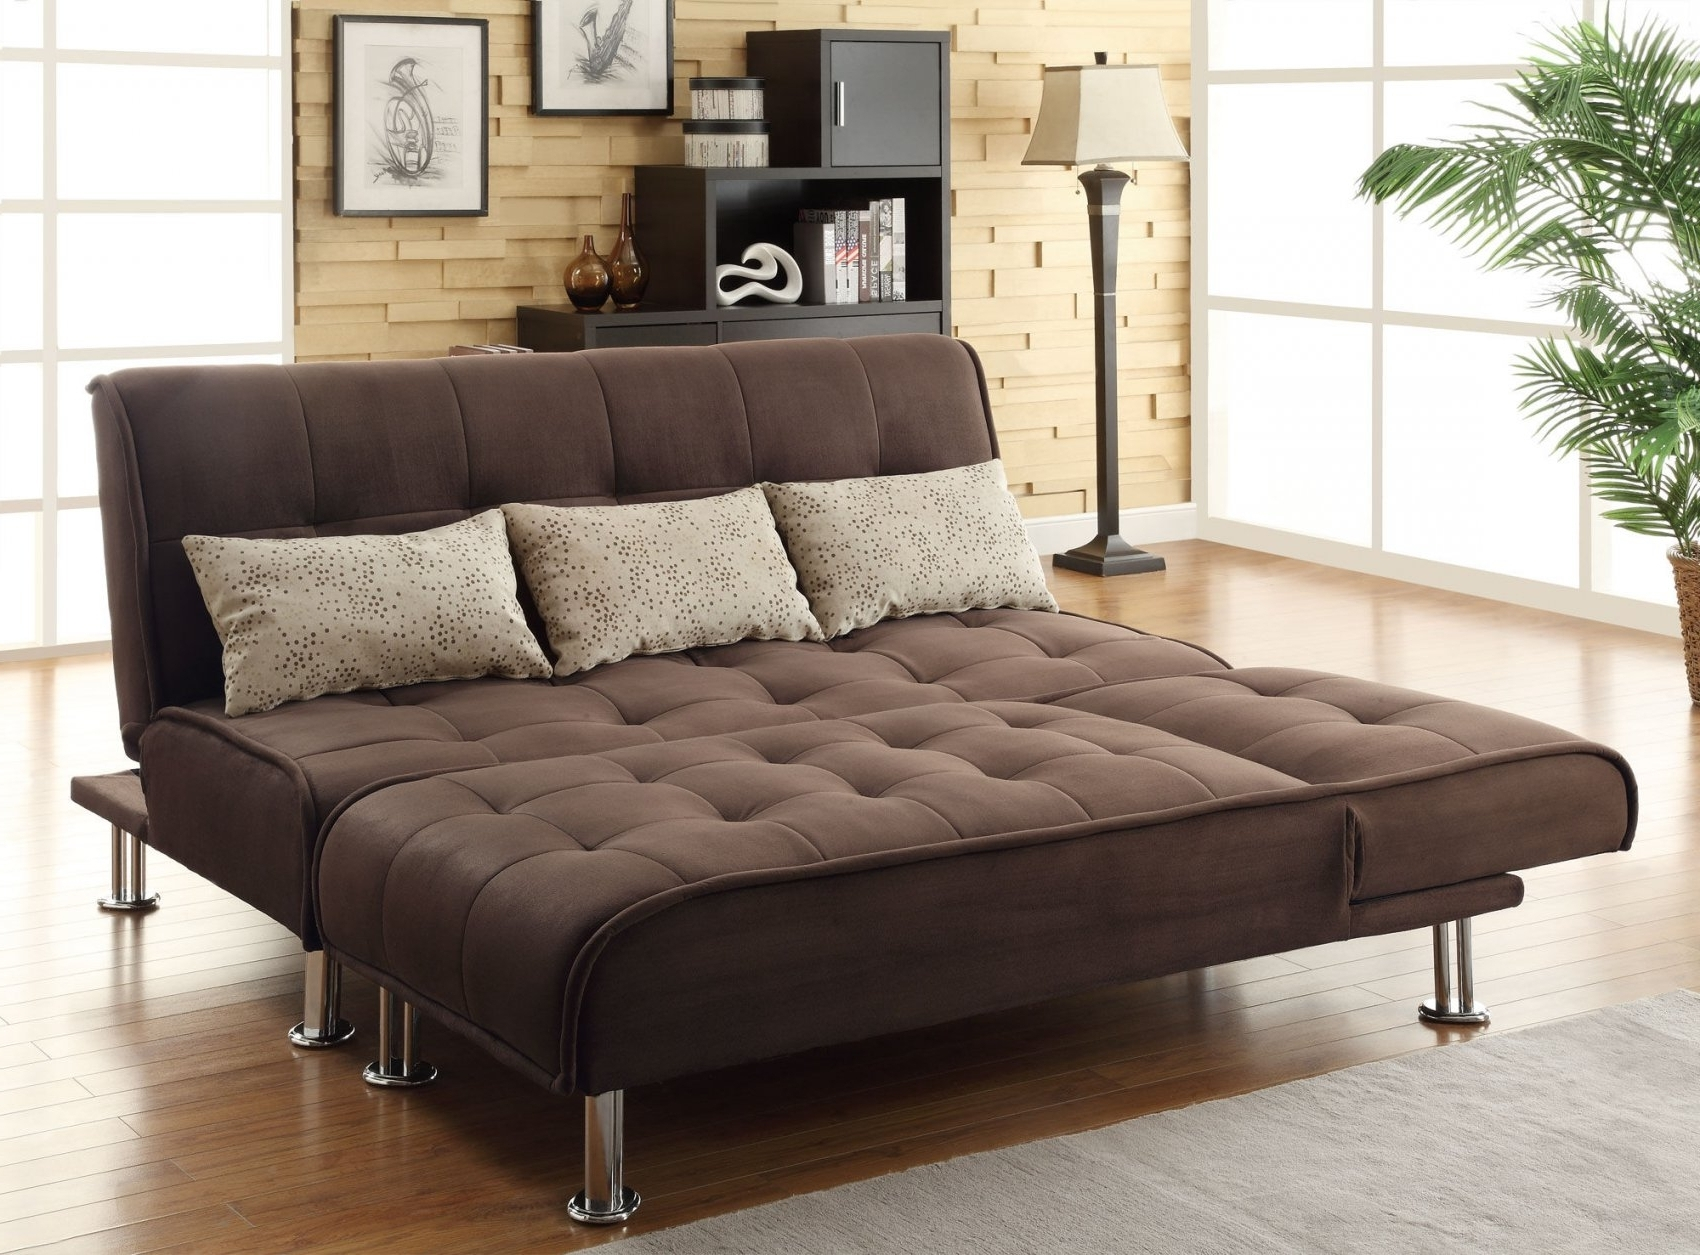 Queen Size Convertible Sofa Bed 46 About Remodel Pepperfry regarding Latest Queen Size Sofas